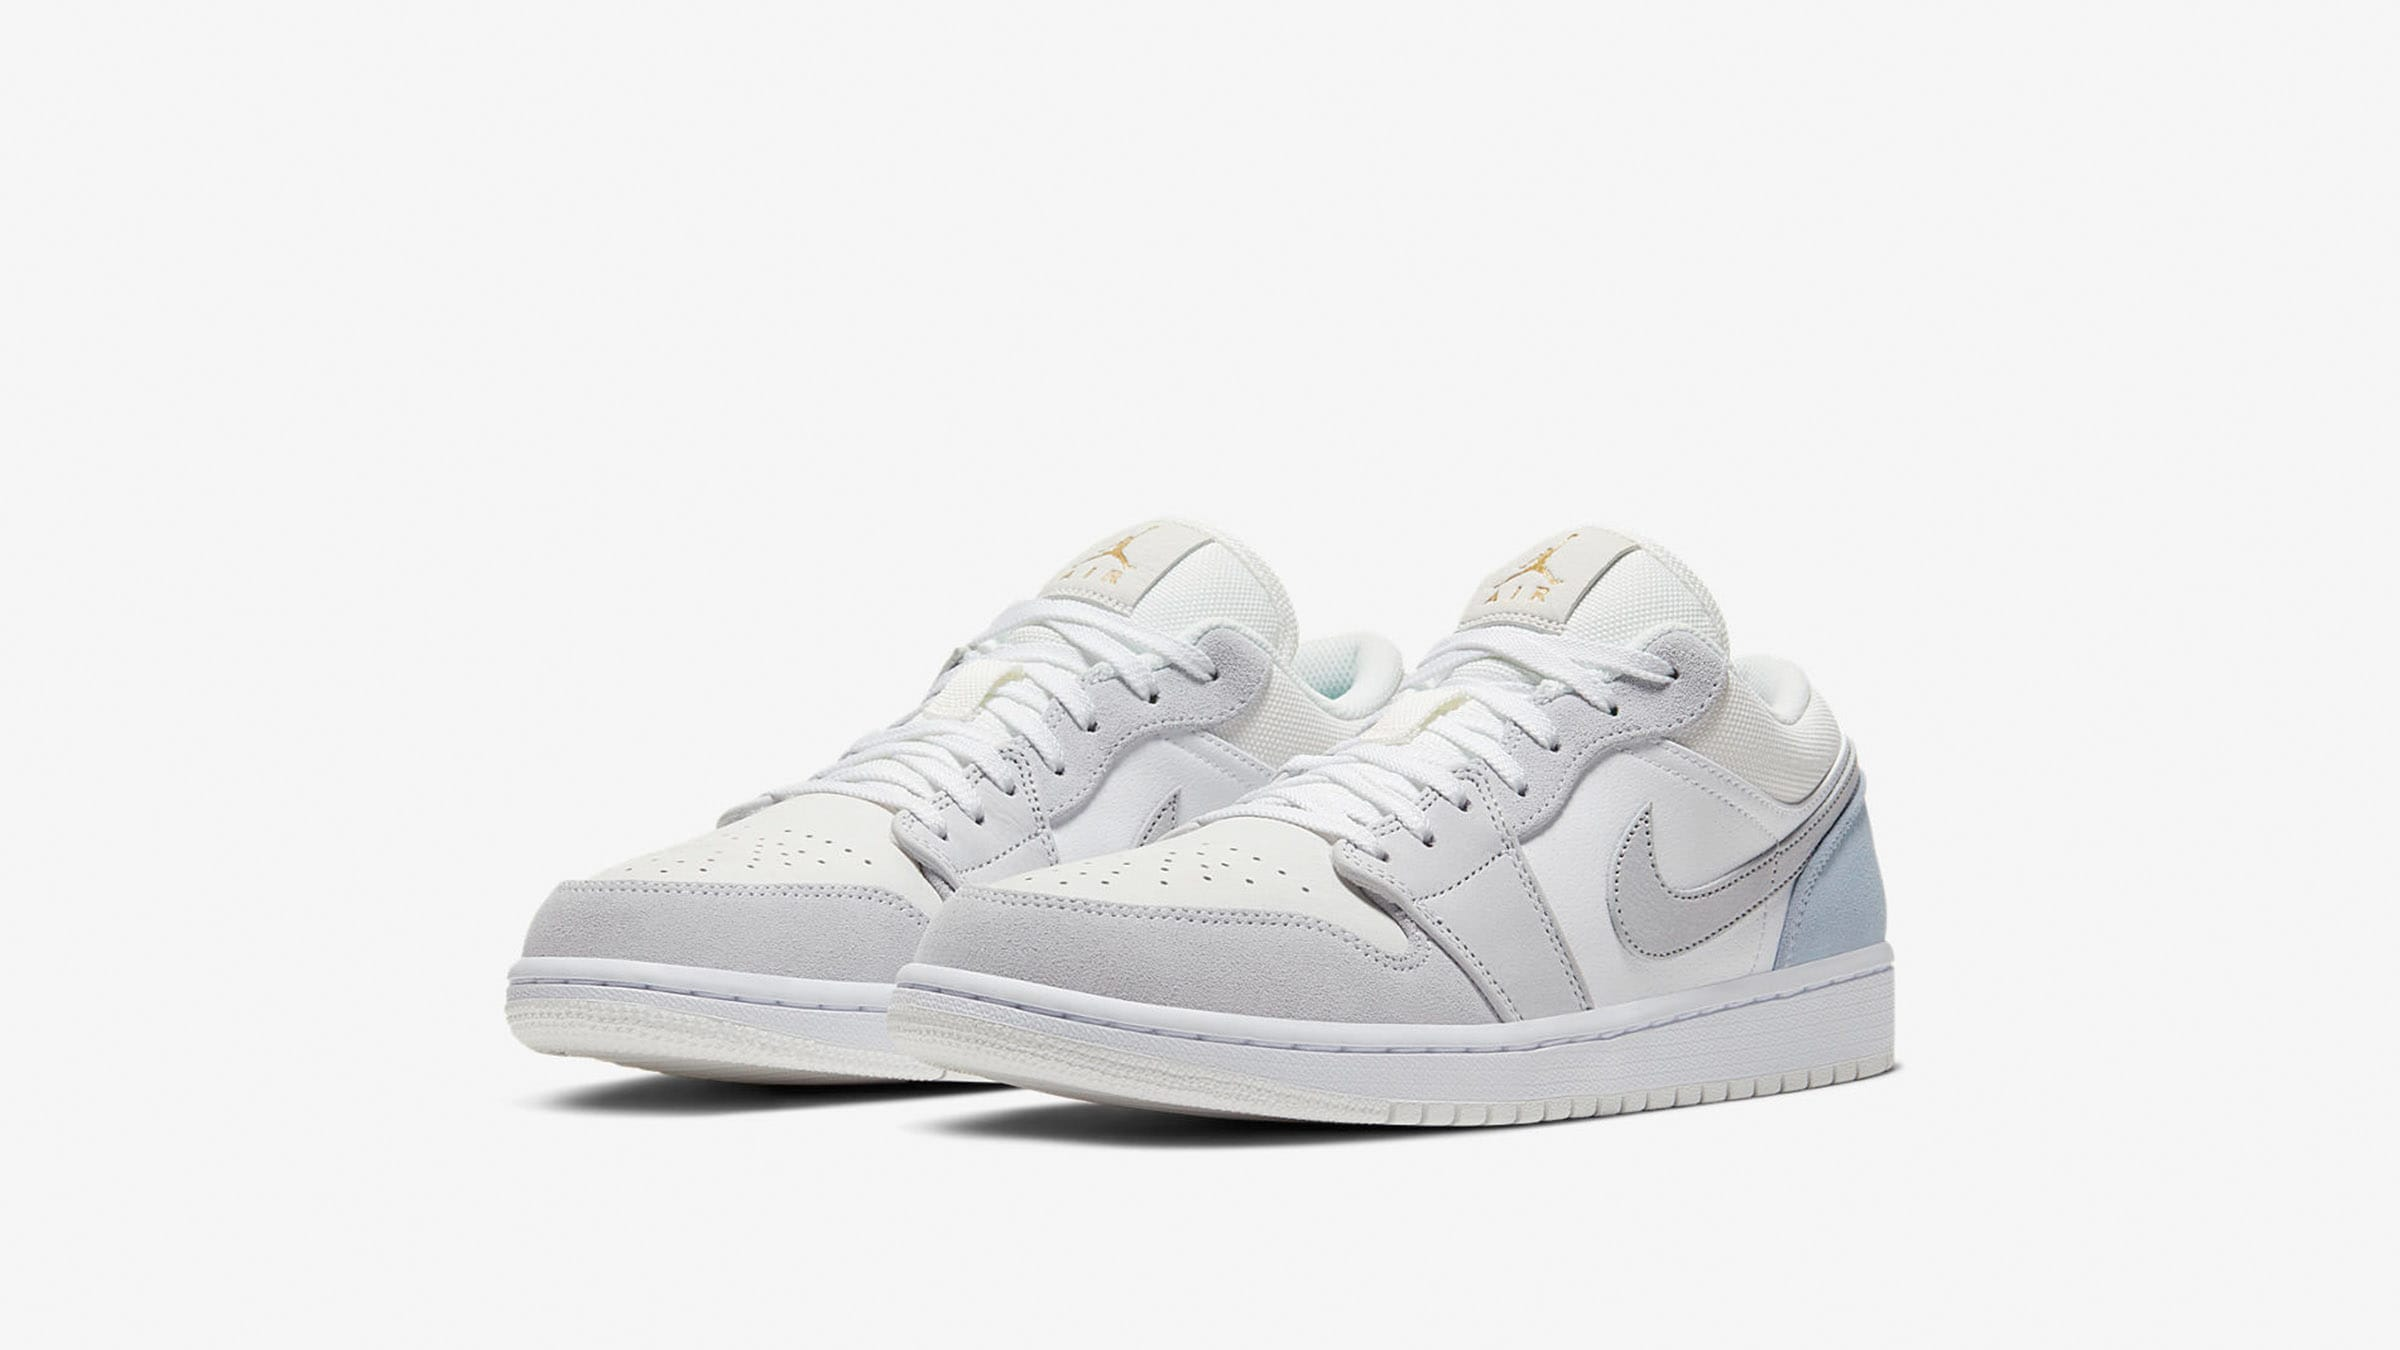 End Features Nike Air Jordan 1 Low Paris Register Now On